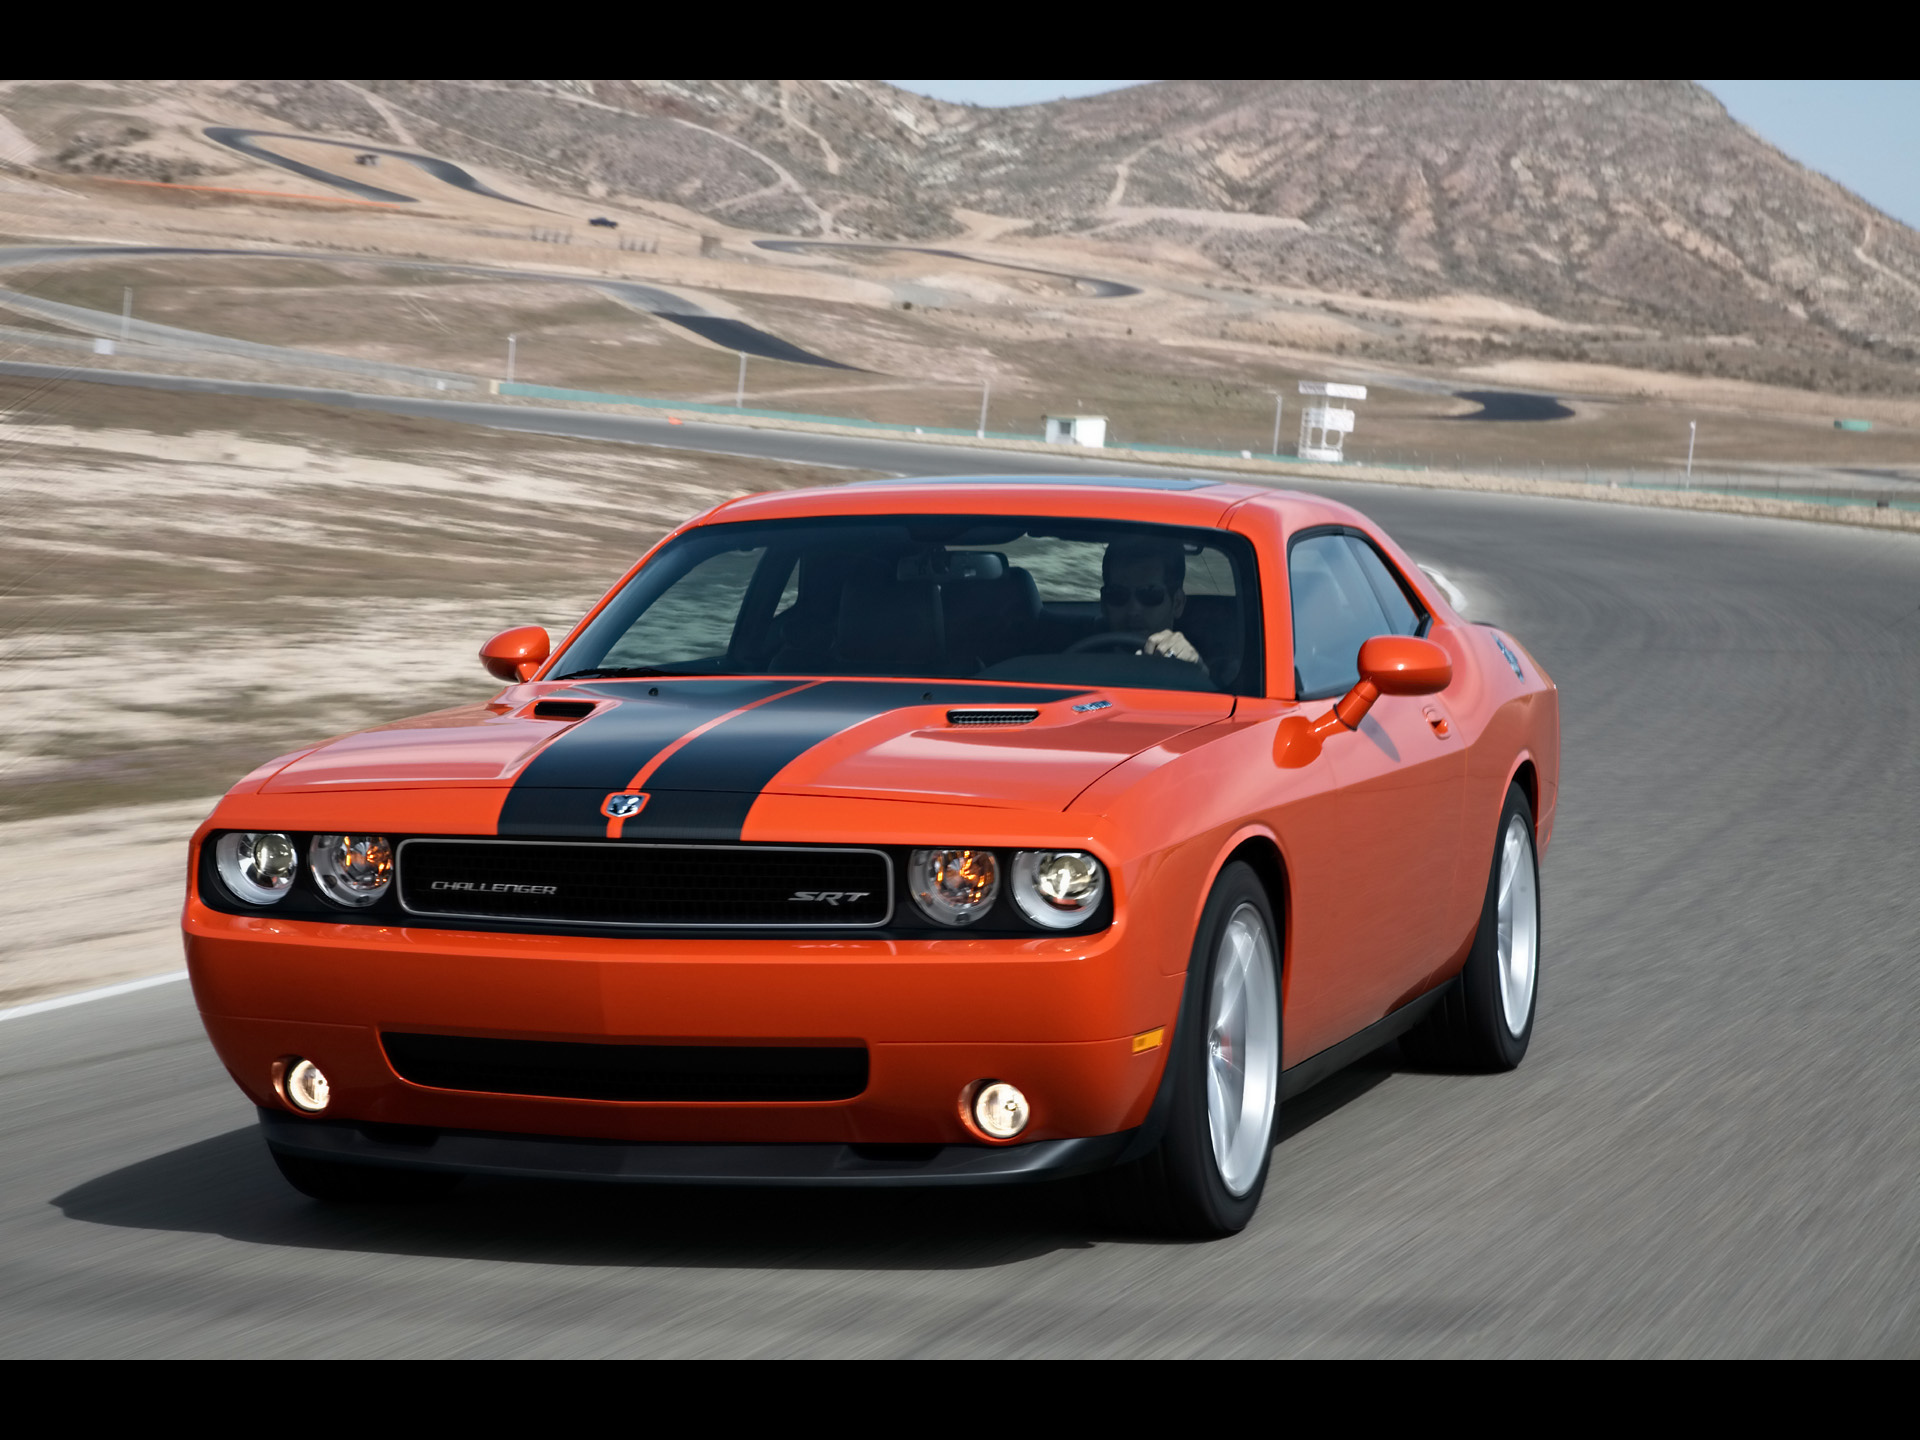 2010 Dodge Challenger SRT8   Front Angle Speed   1920x1440   Wallpaper 1920x1440